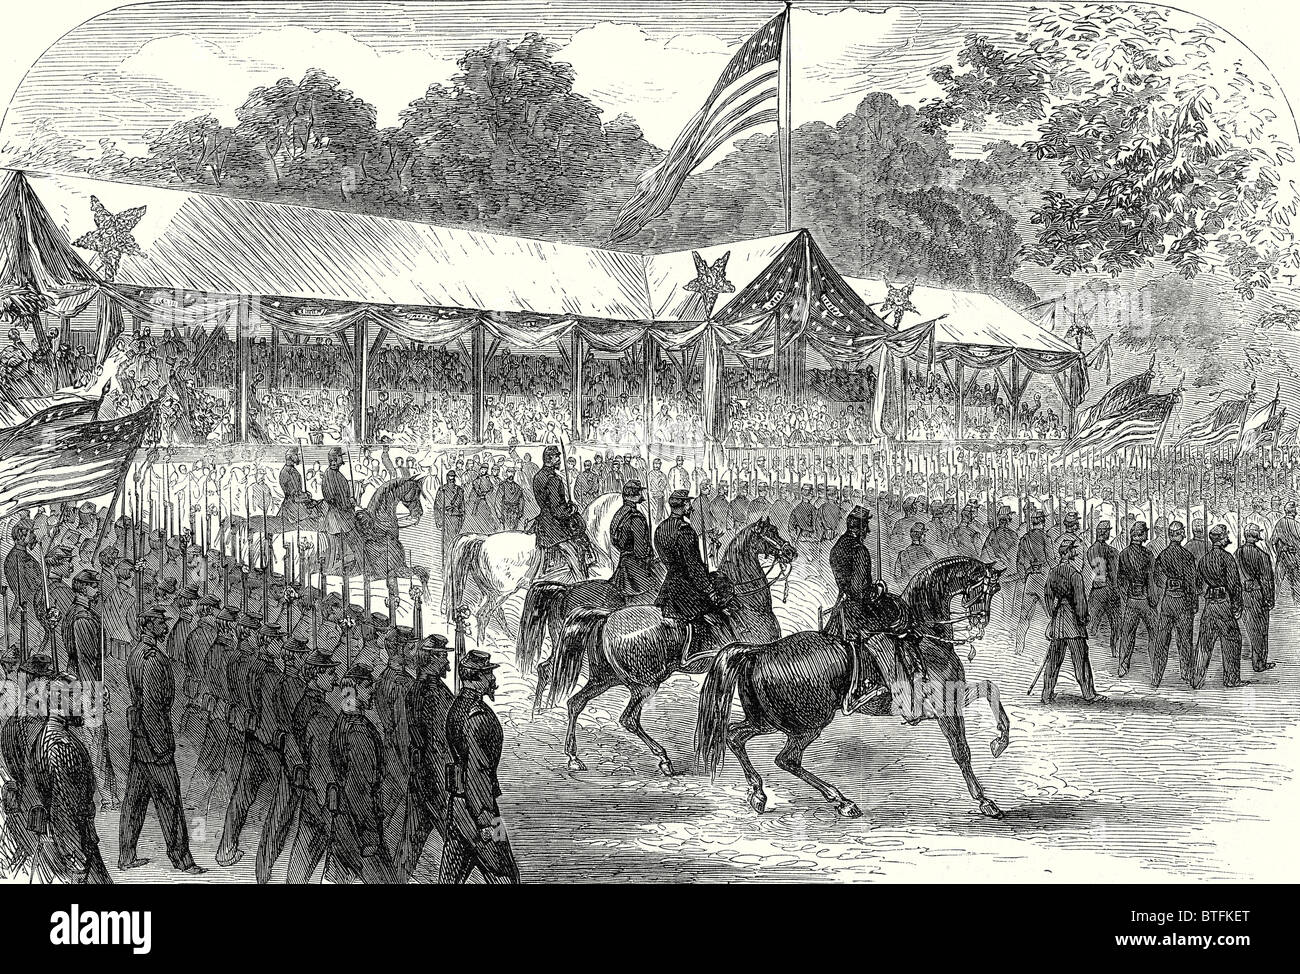 a review of the civil war Was general-in-chief of the union army from 1864 to 1869 during the american civil war and the 18th president of the united states from 1869 to 1877 chancellorsville a major battle in the american civil war (1863), the confederates under robert e lee defeated the union forces under joseph hooker.